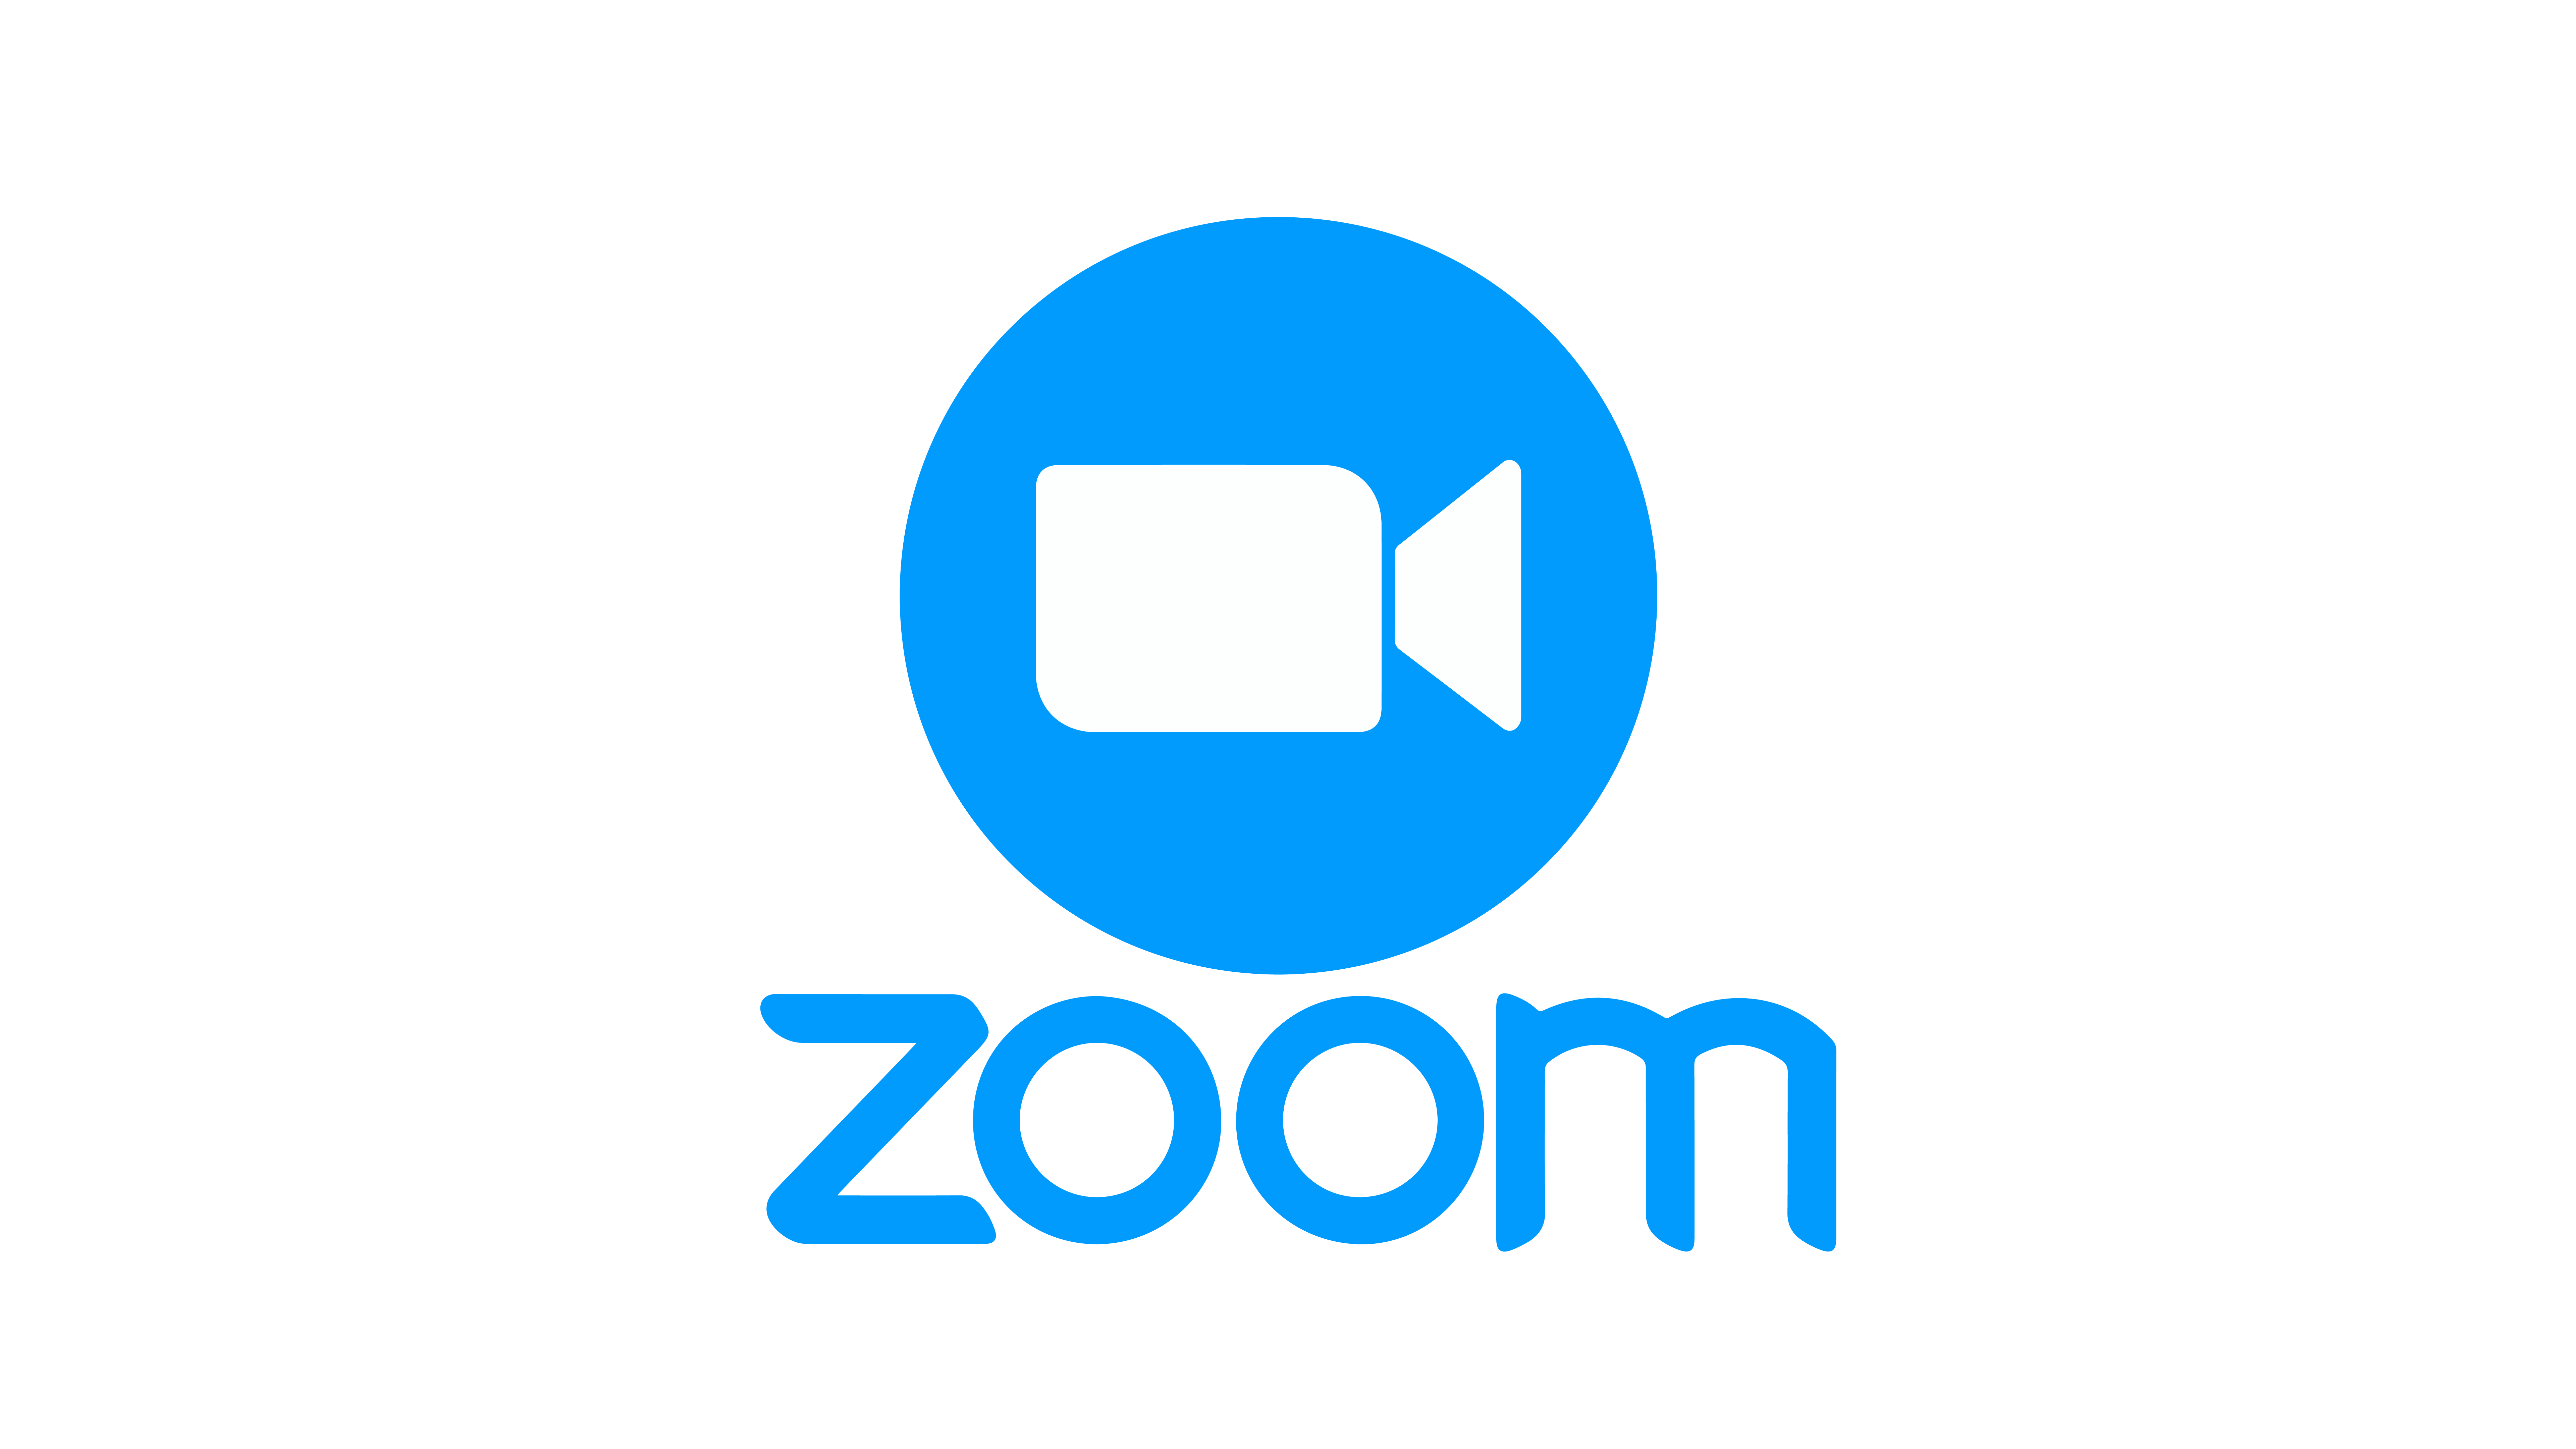 View Zoom Meeting Logo Transparent Background Pics